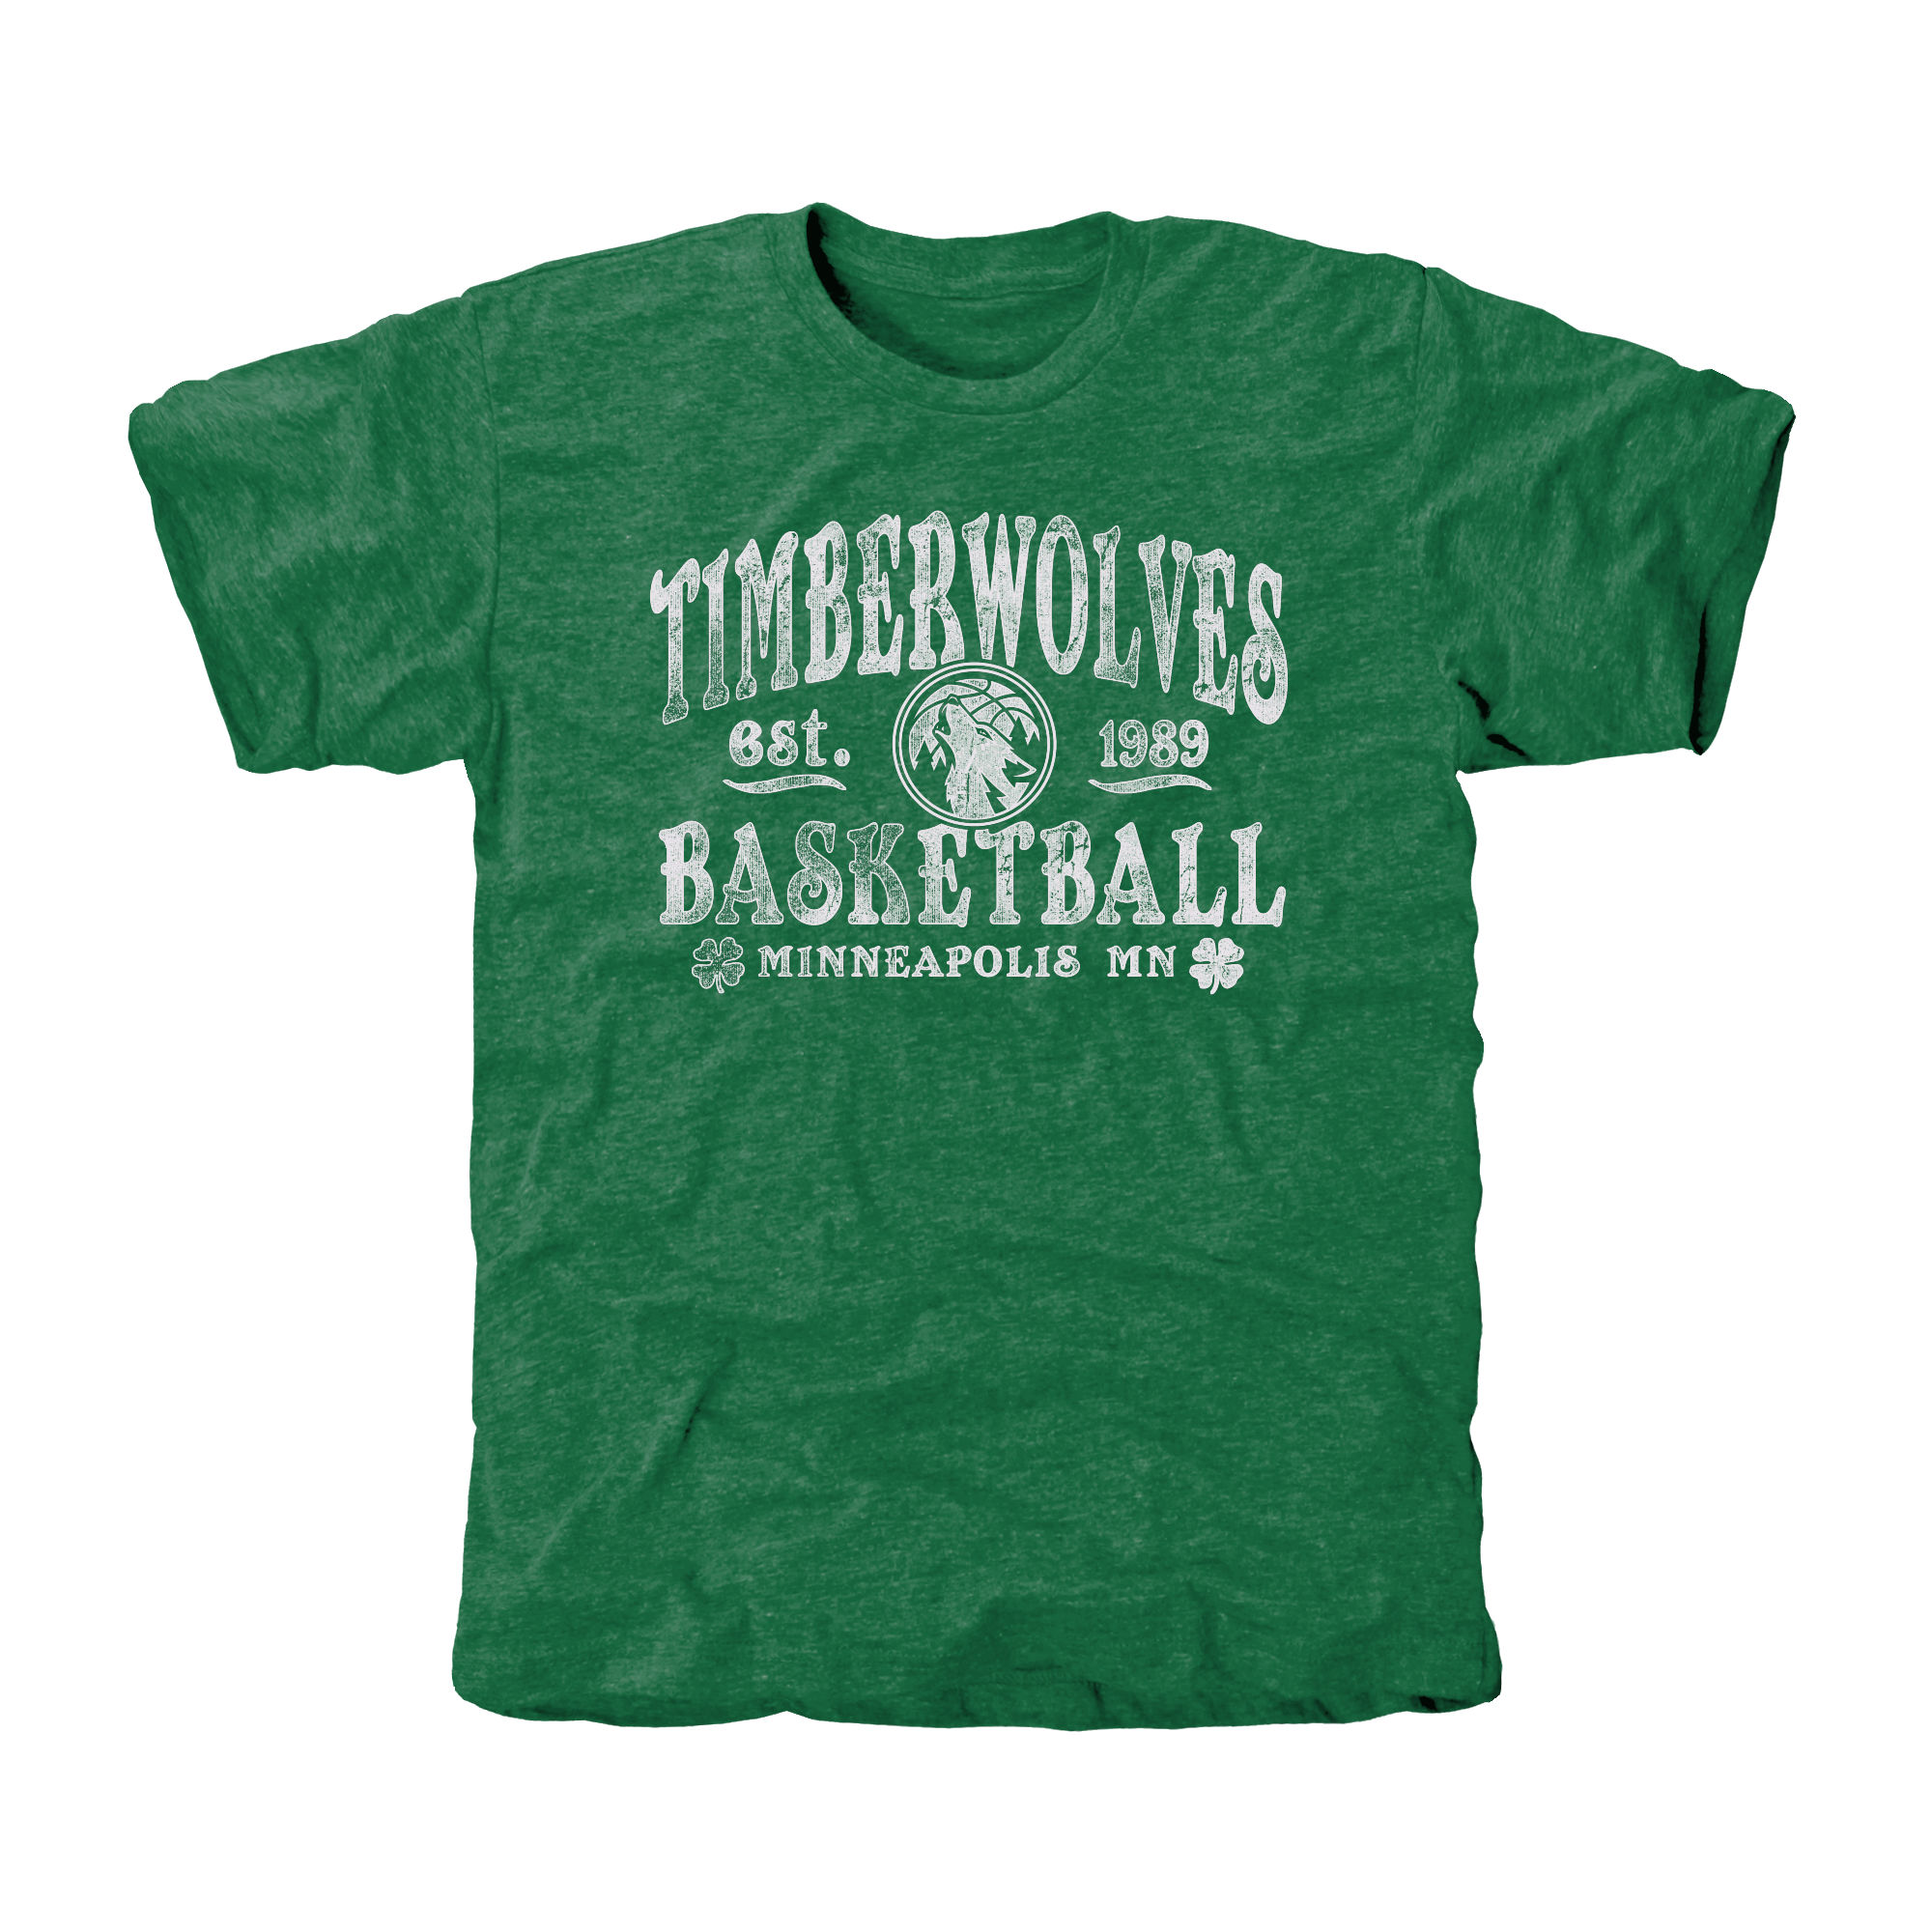 Minnesota Timberwolves St. Patrick's Day Blarney Tri-Blend T-Shirt - Green